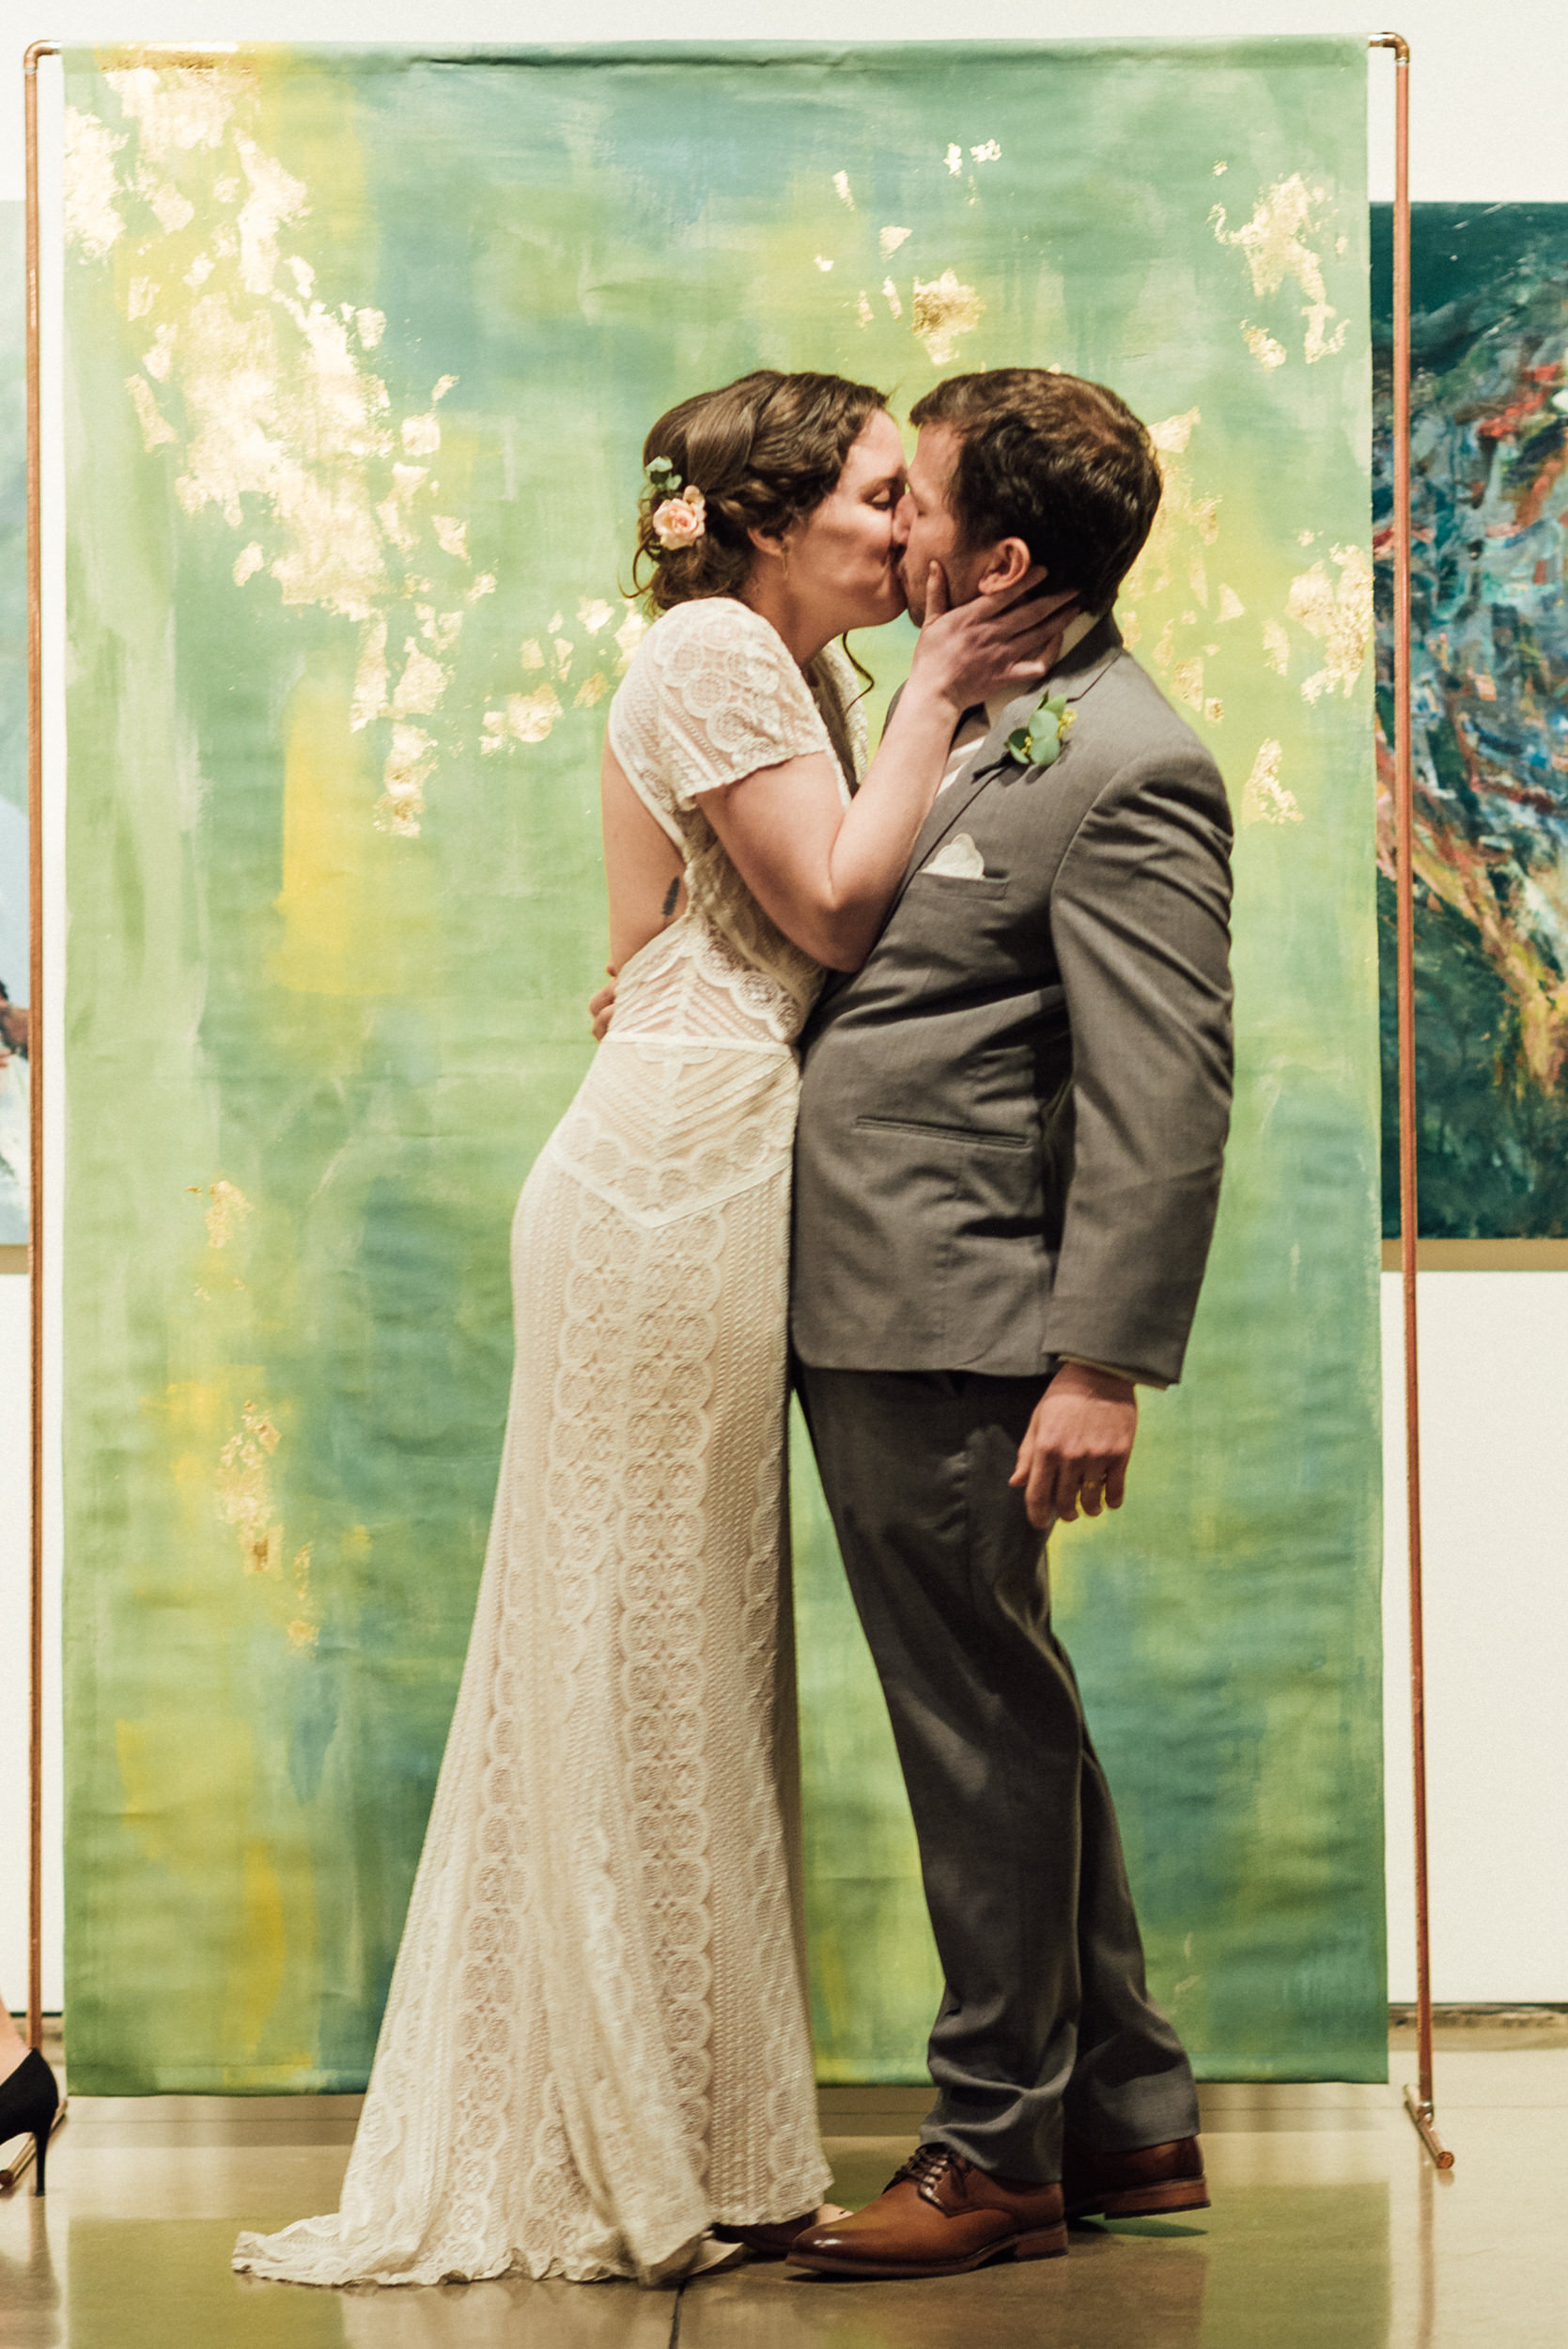 First kiss at Space Gallery wedding ceremony-Colorado Kate Photography